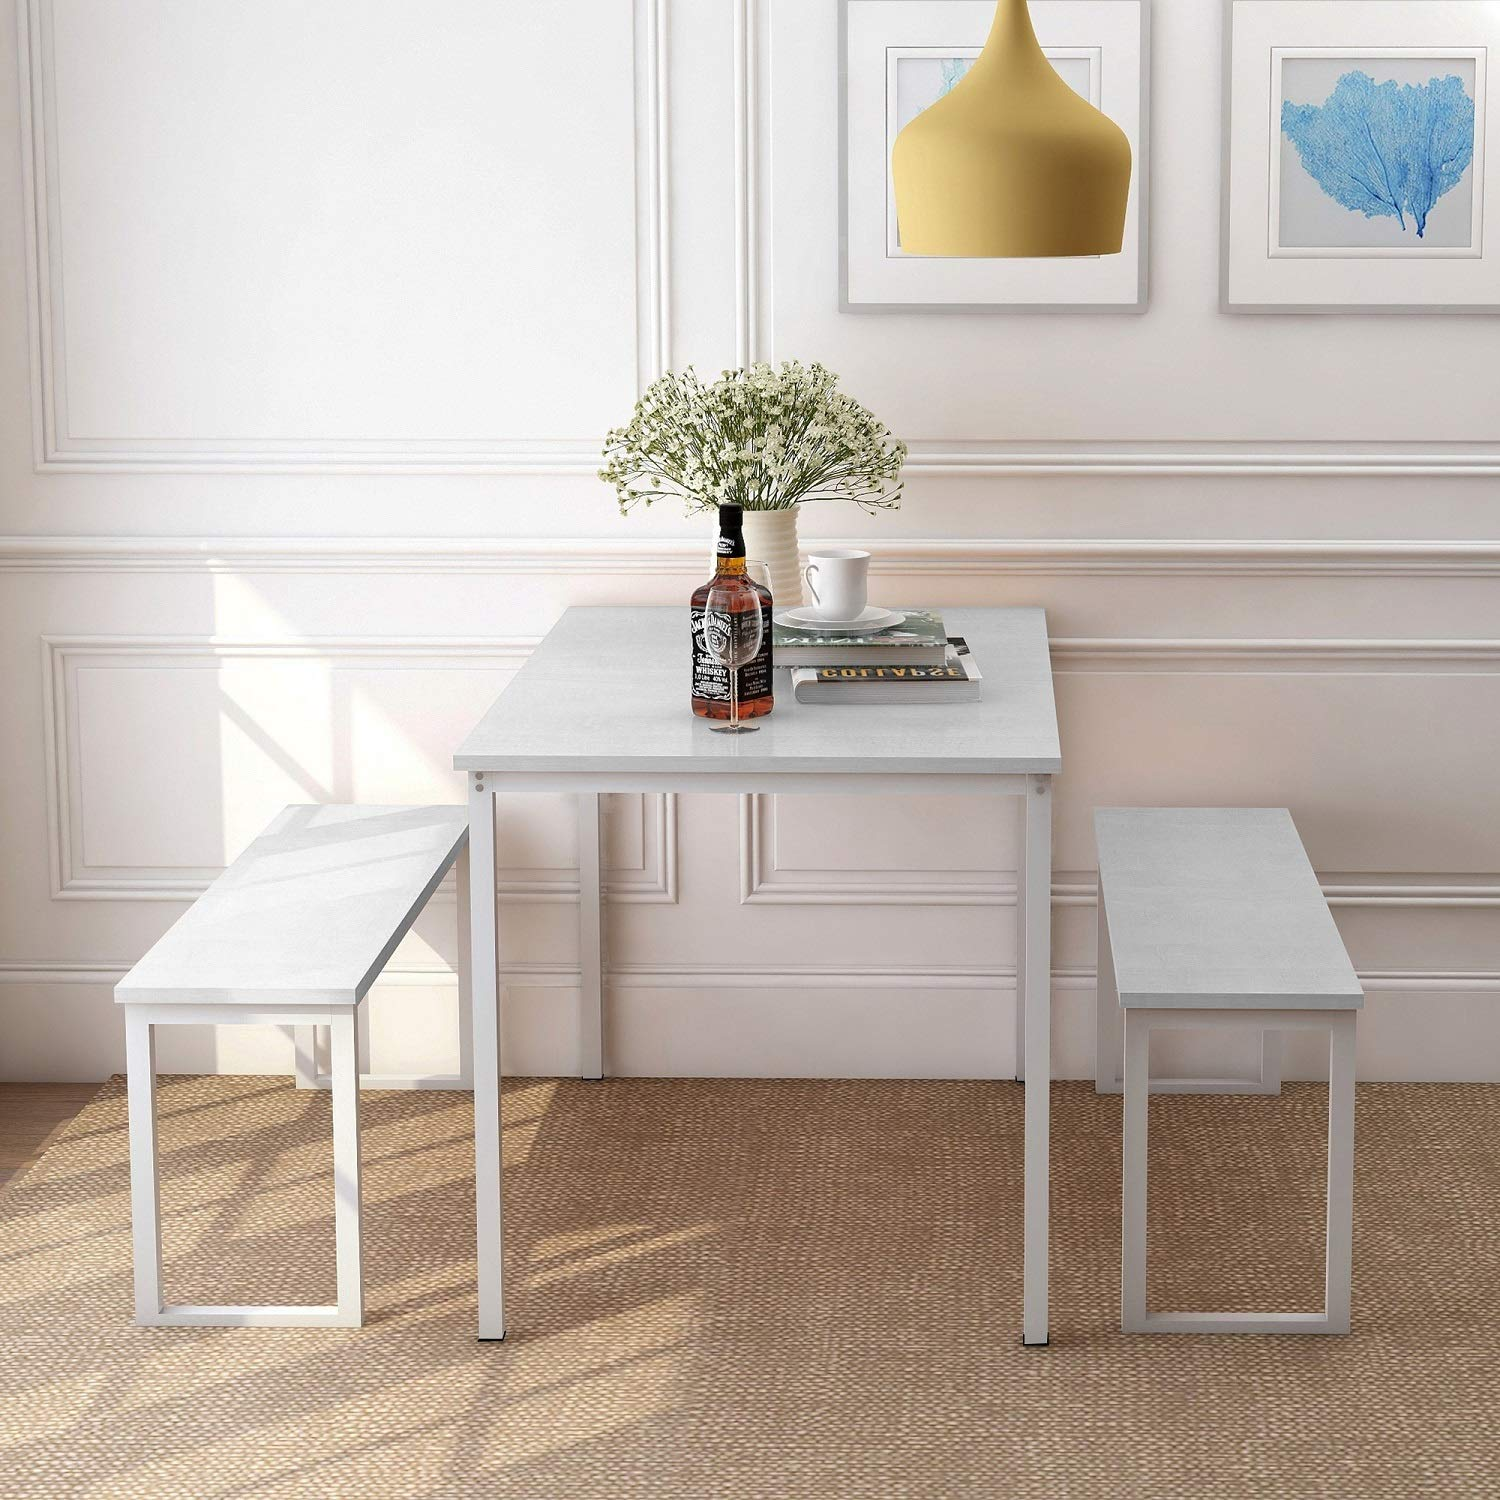 Rhomtree 3 Pieces Dining Set Table with 2 Benches Kitchen Dining Room Furniture 47.6''L x 29.9''W Modern Style Wood Table Top with Metal Frame (White) by Rhomtree